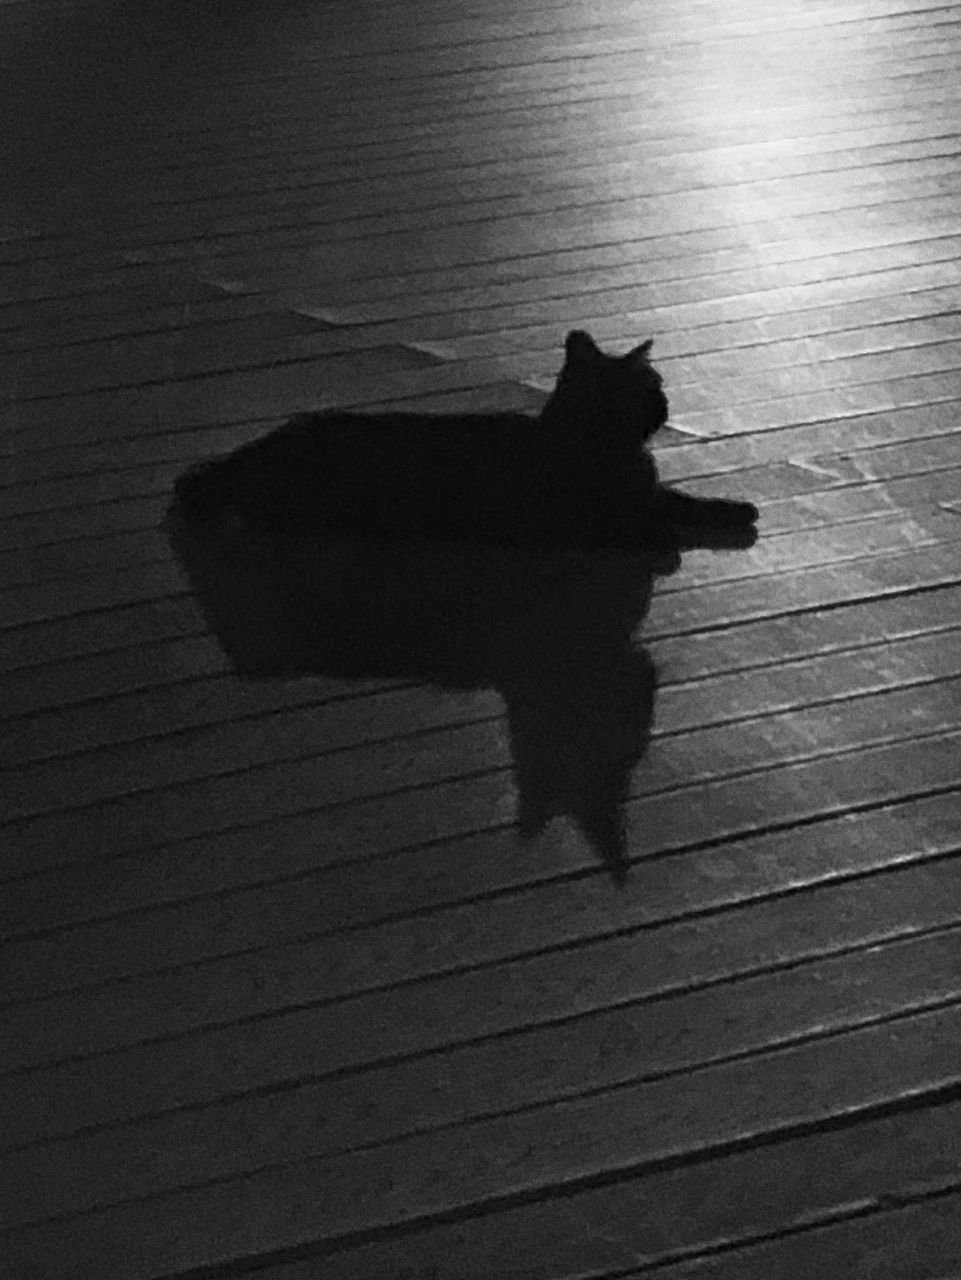 HIGH ANGLE VIEW OF CAT SHADOW ON A WOODEN FLOOR